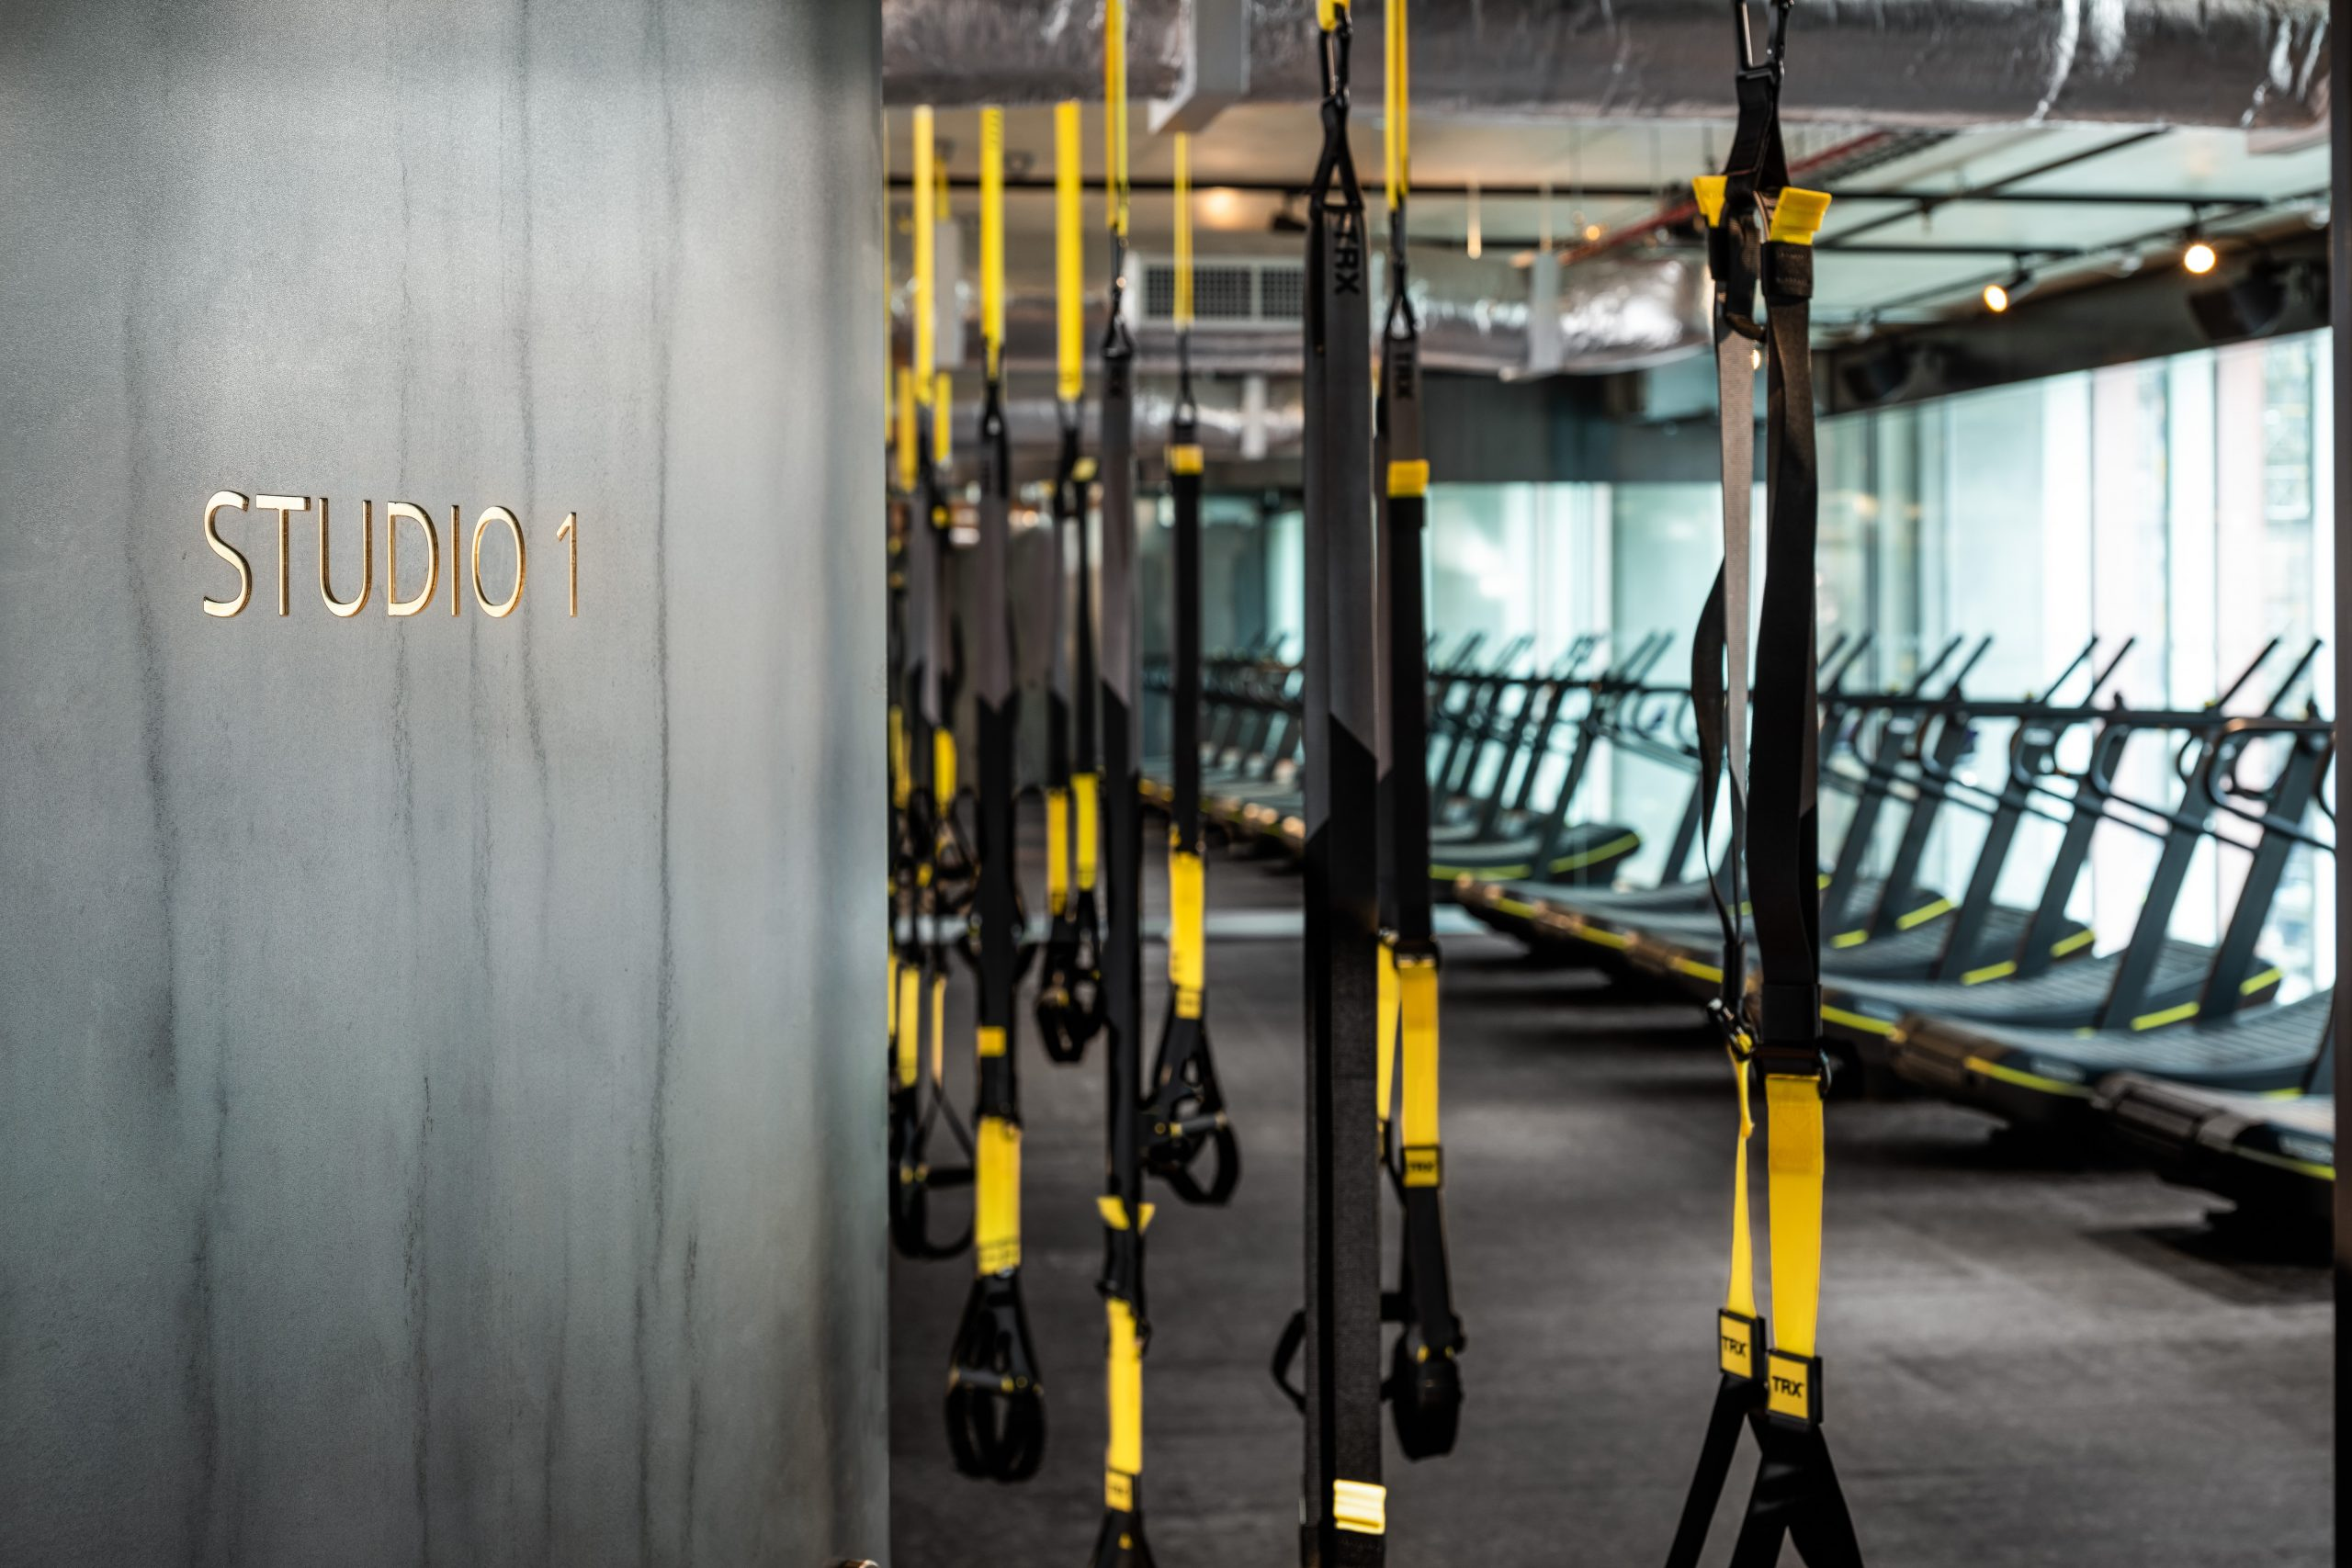 Equilibrium Launches New Flagship Studio In London With Innovative Class Concept